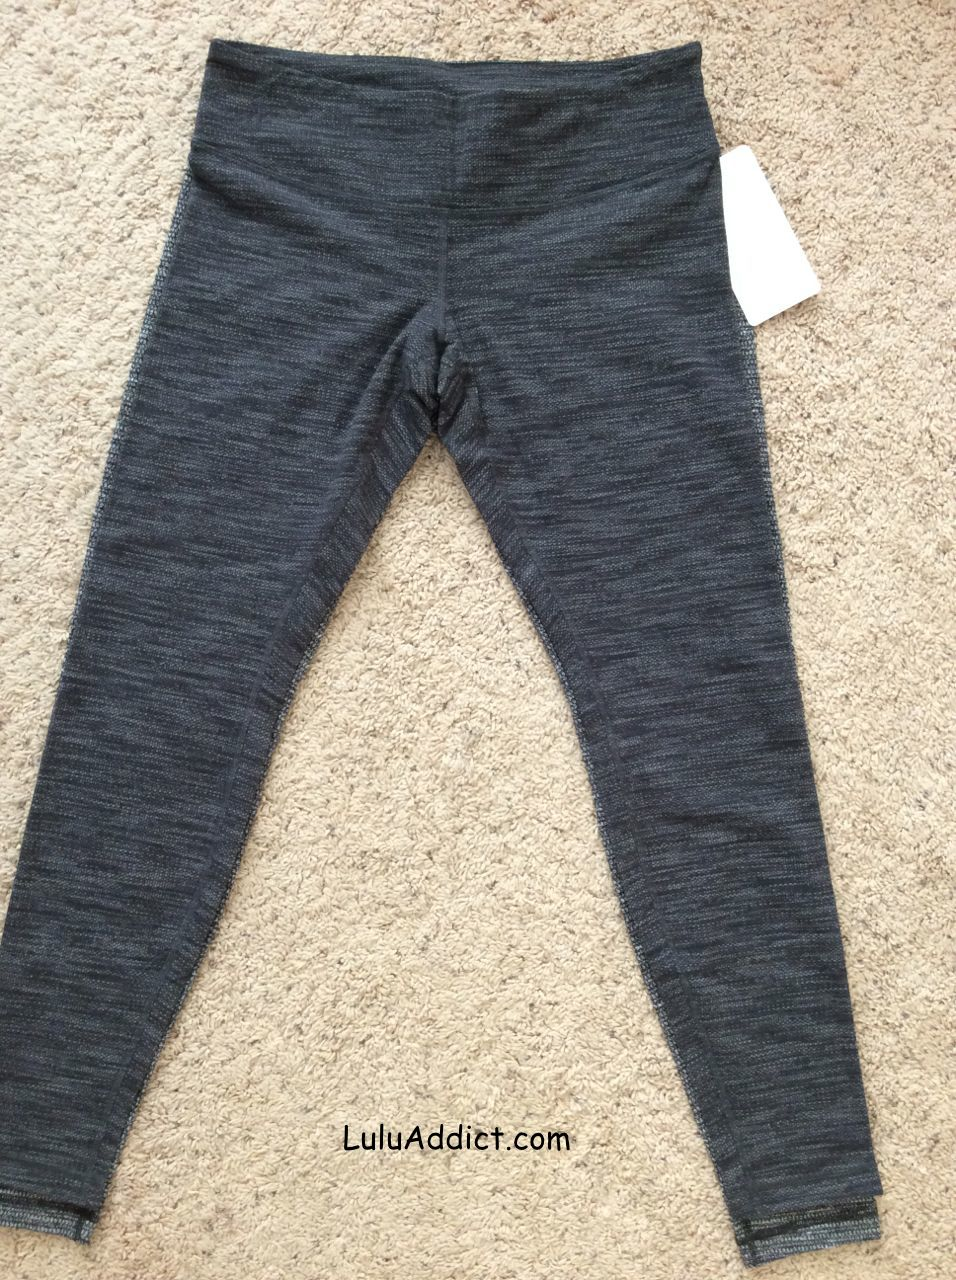 lululemon space dye jacquard wunder under pants